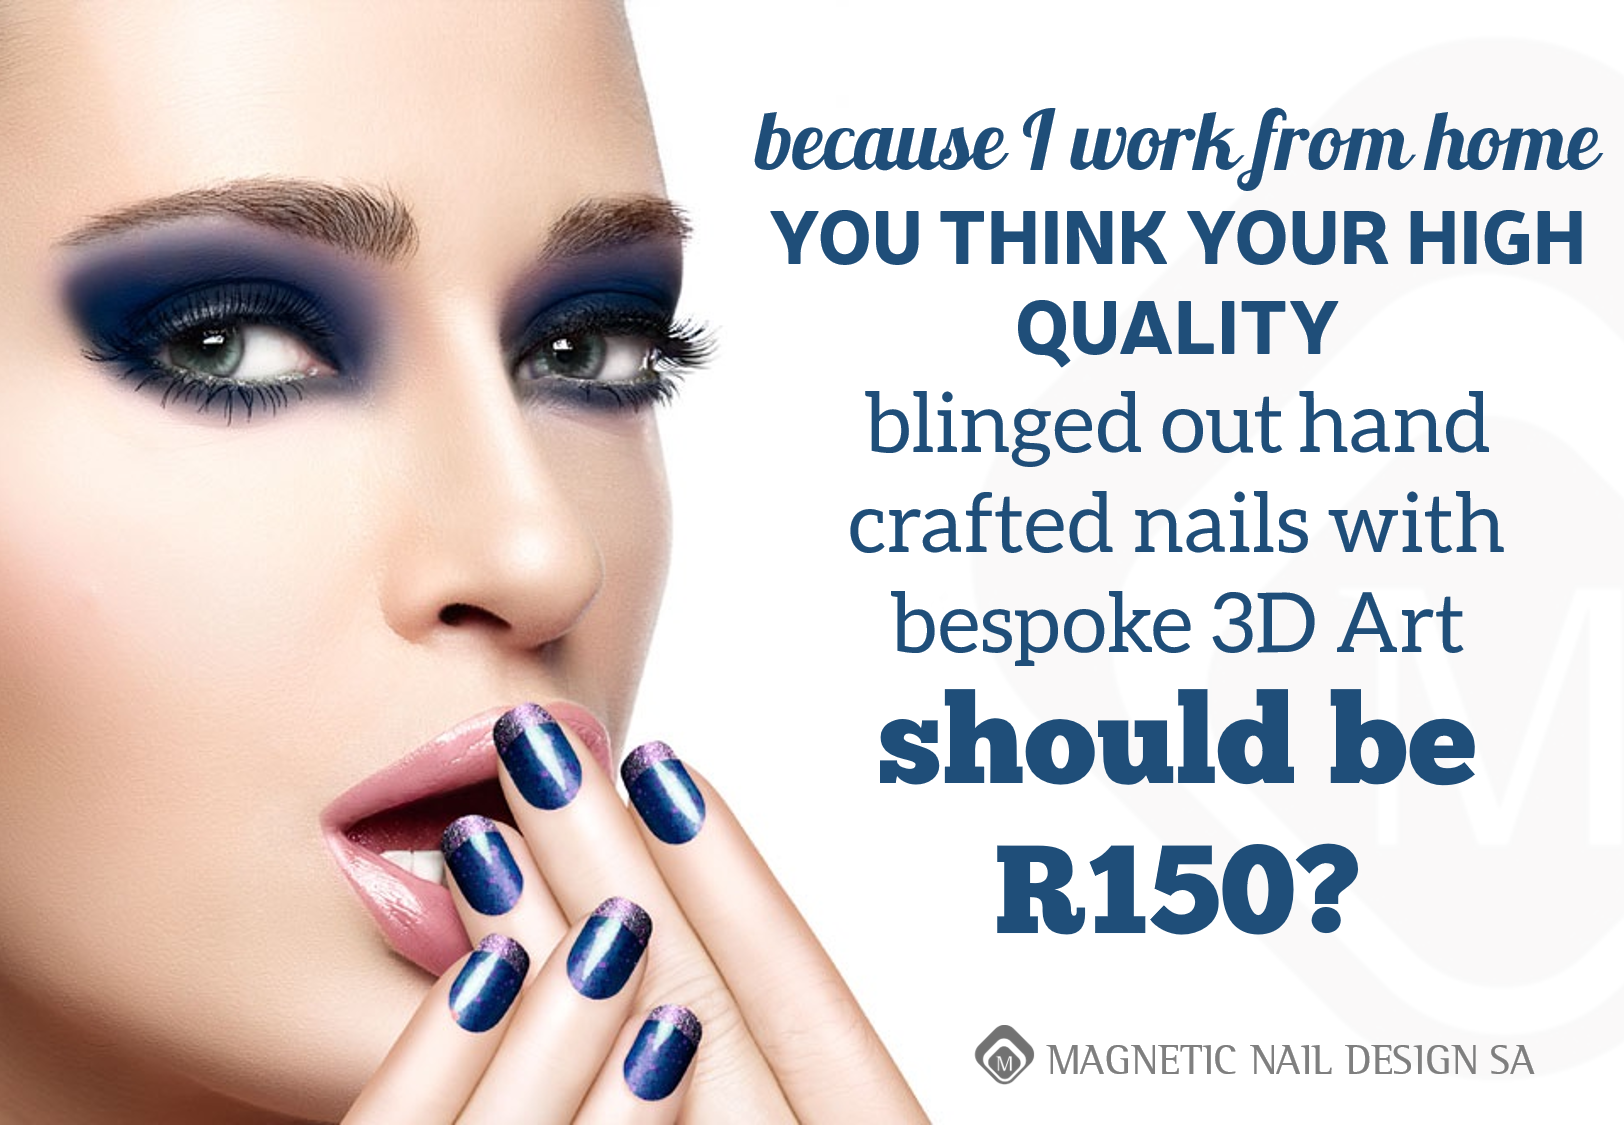 8 posters to help you build your Nail Salon - Magnetic Nail Academy